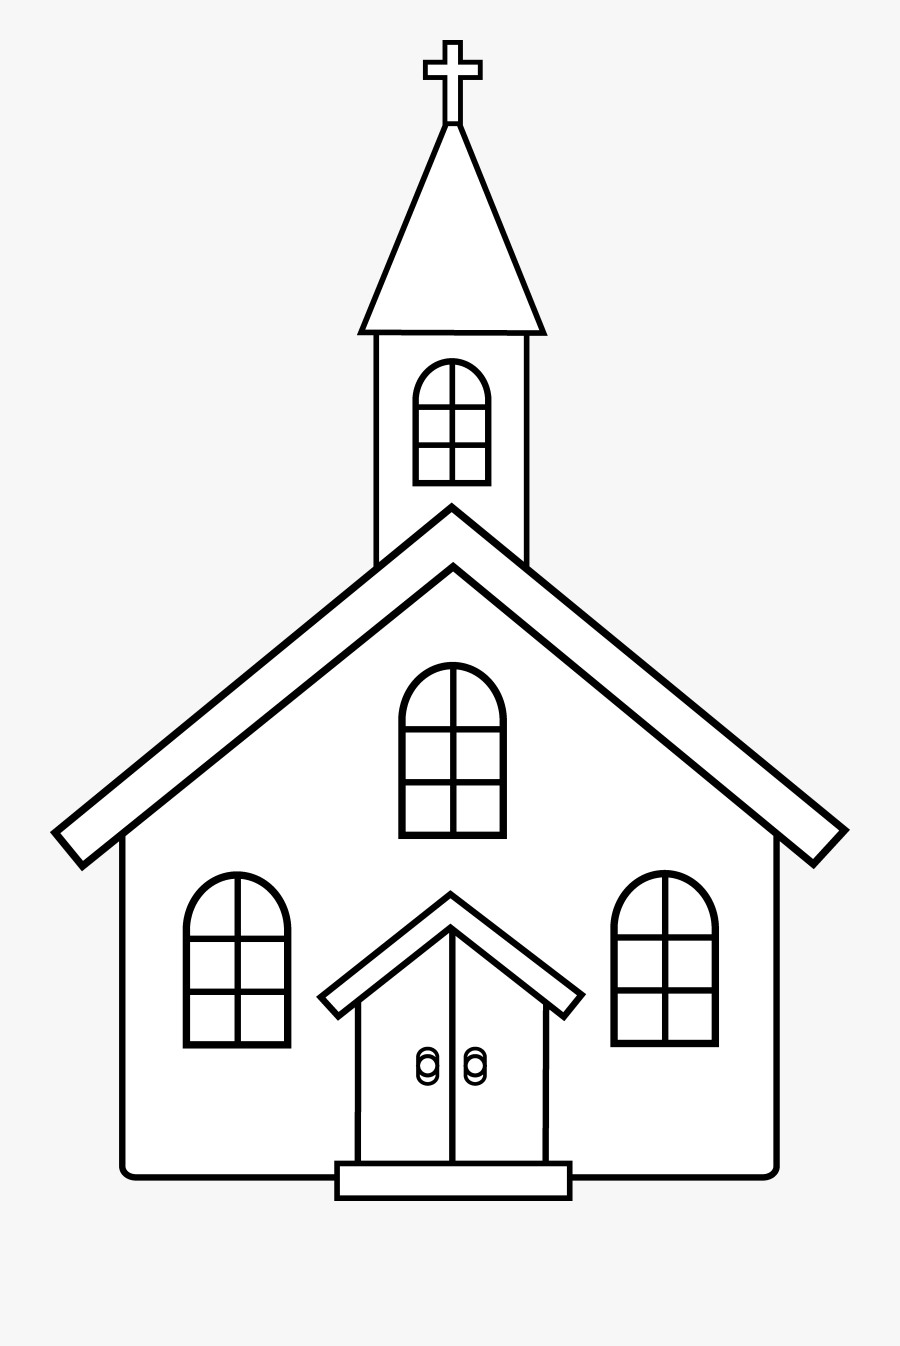 Thumb Image - Church Building Clipart Black And White, Transparent Clipart